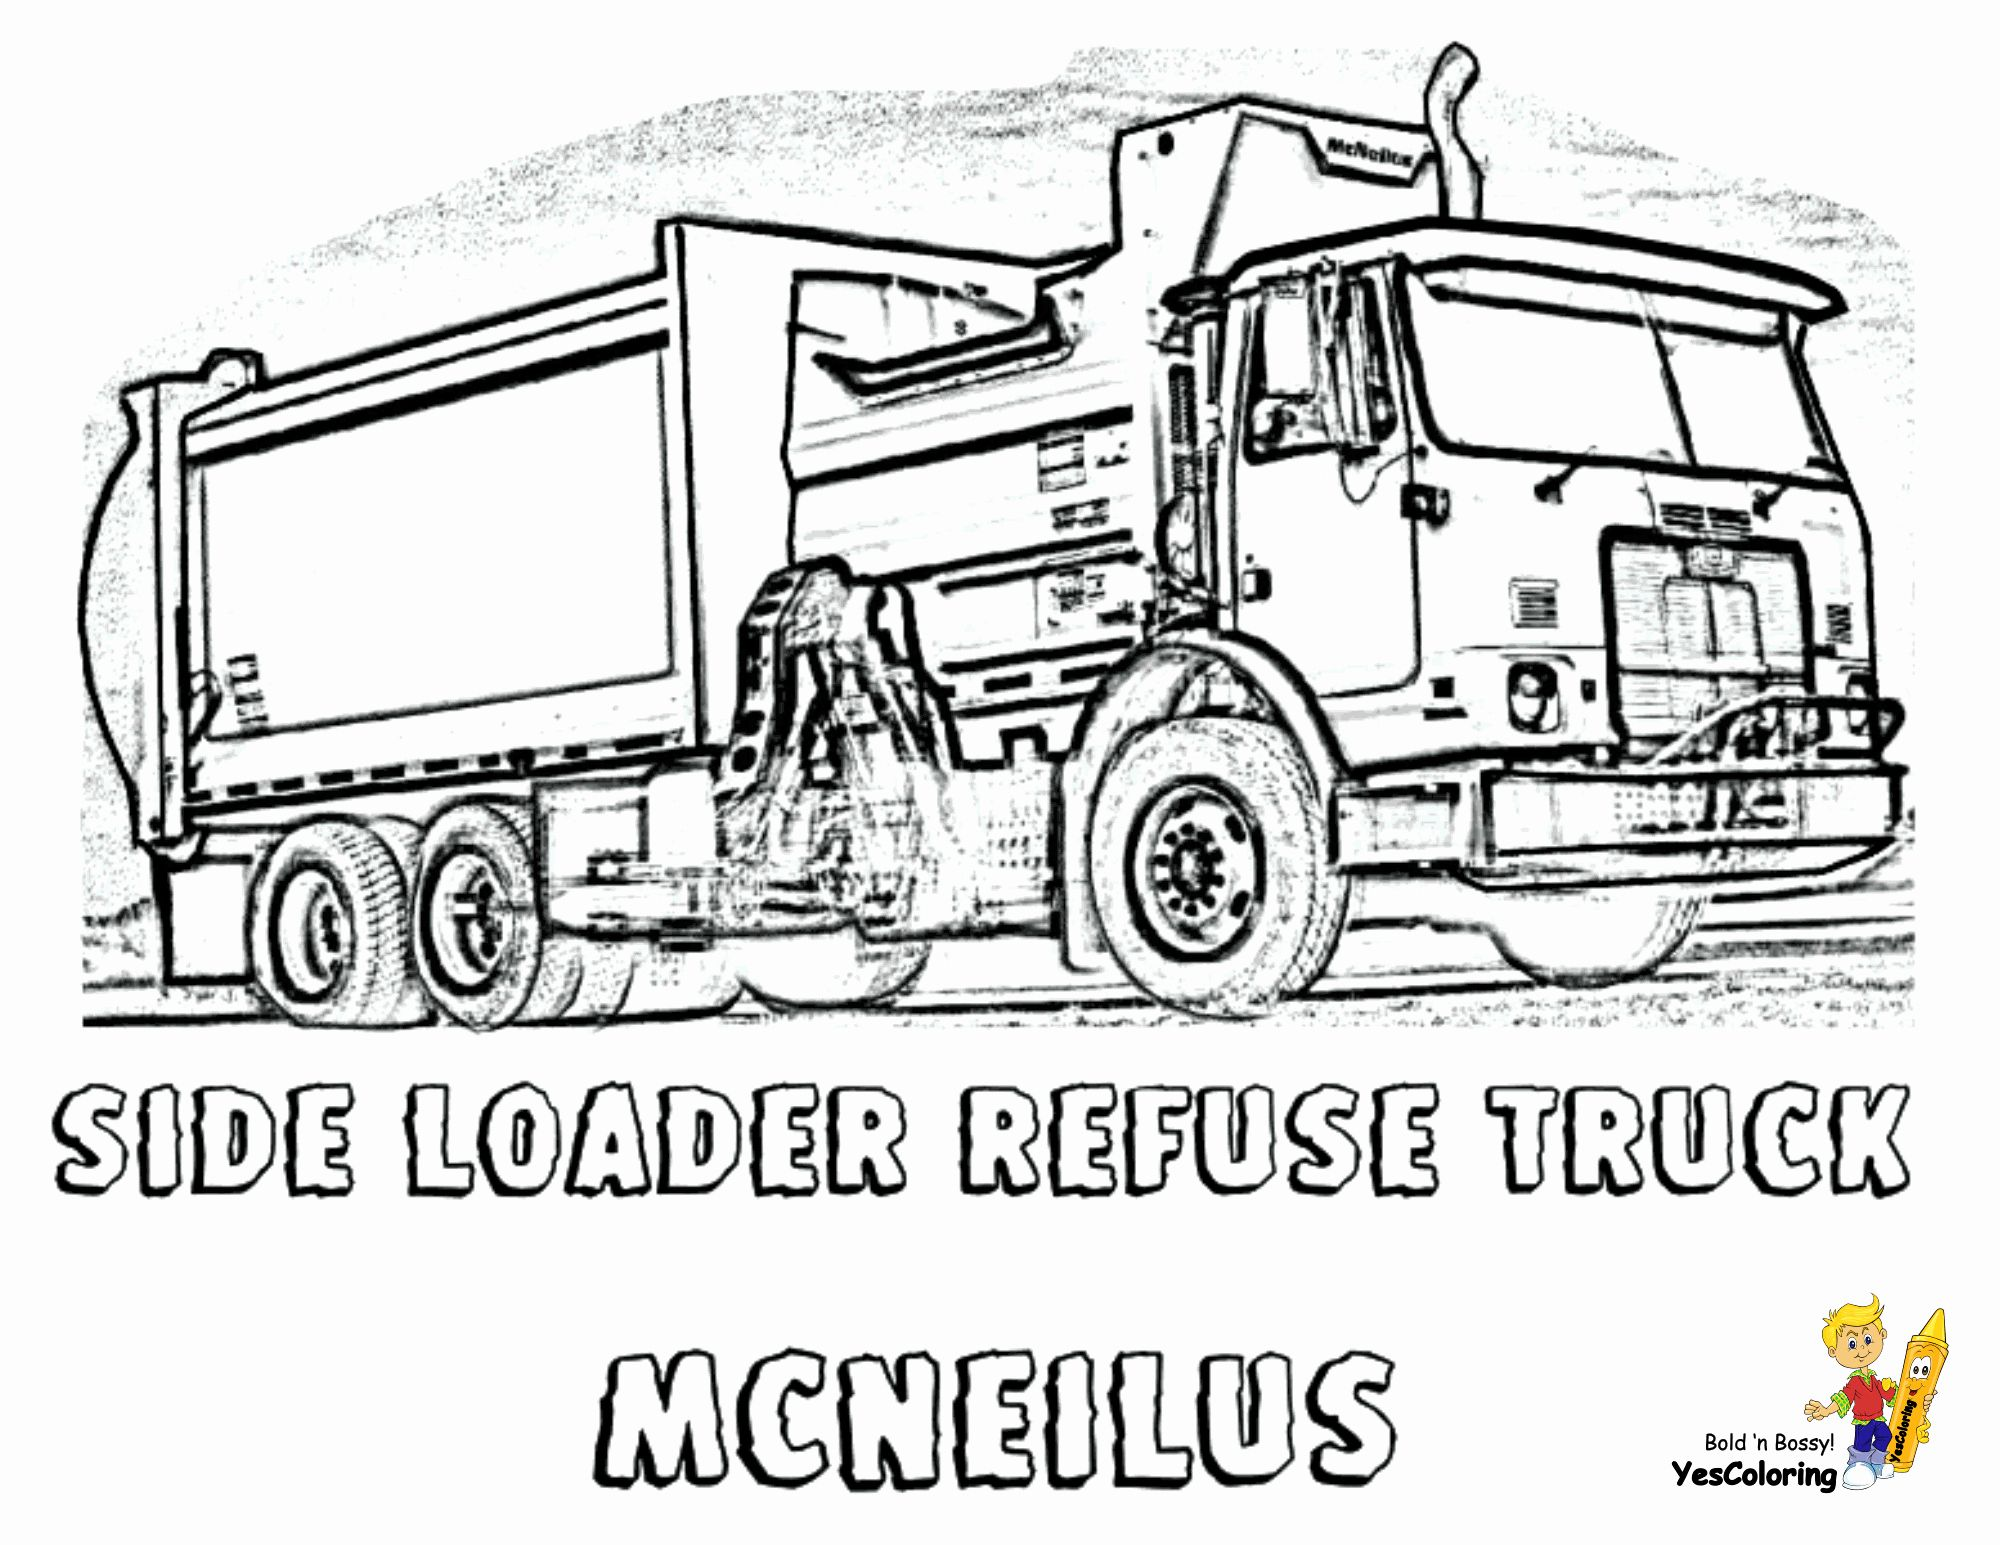 Trash Truck Coloring Page Best Of Grimy Garbage Truck Coloring Page Free In 2020 Truck Coloring Pages Monster Truck Coloring Pages Garbage Truck